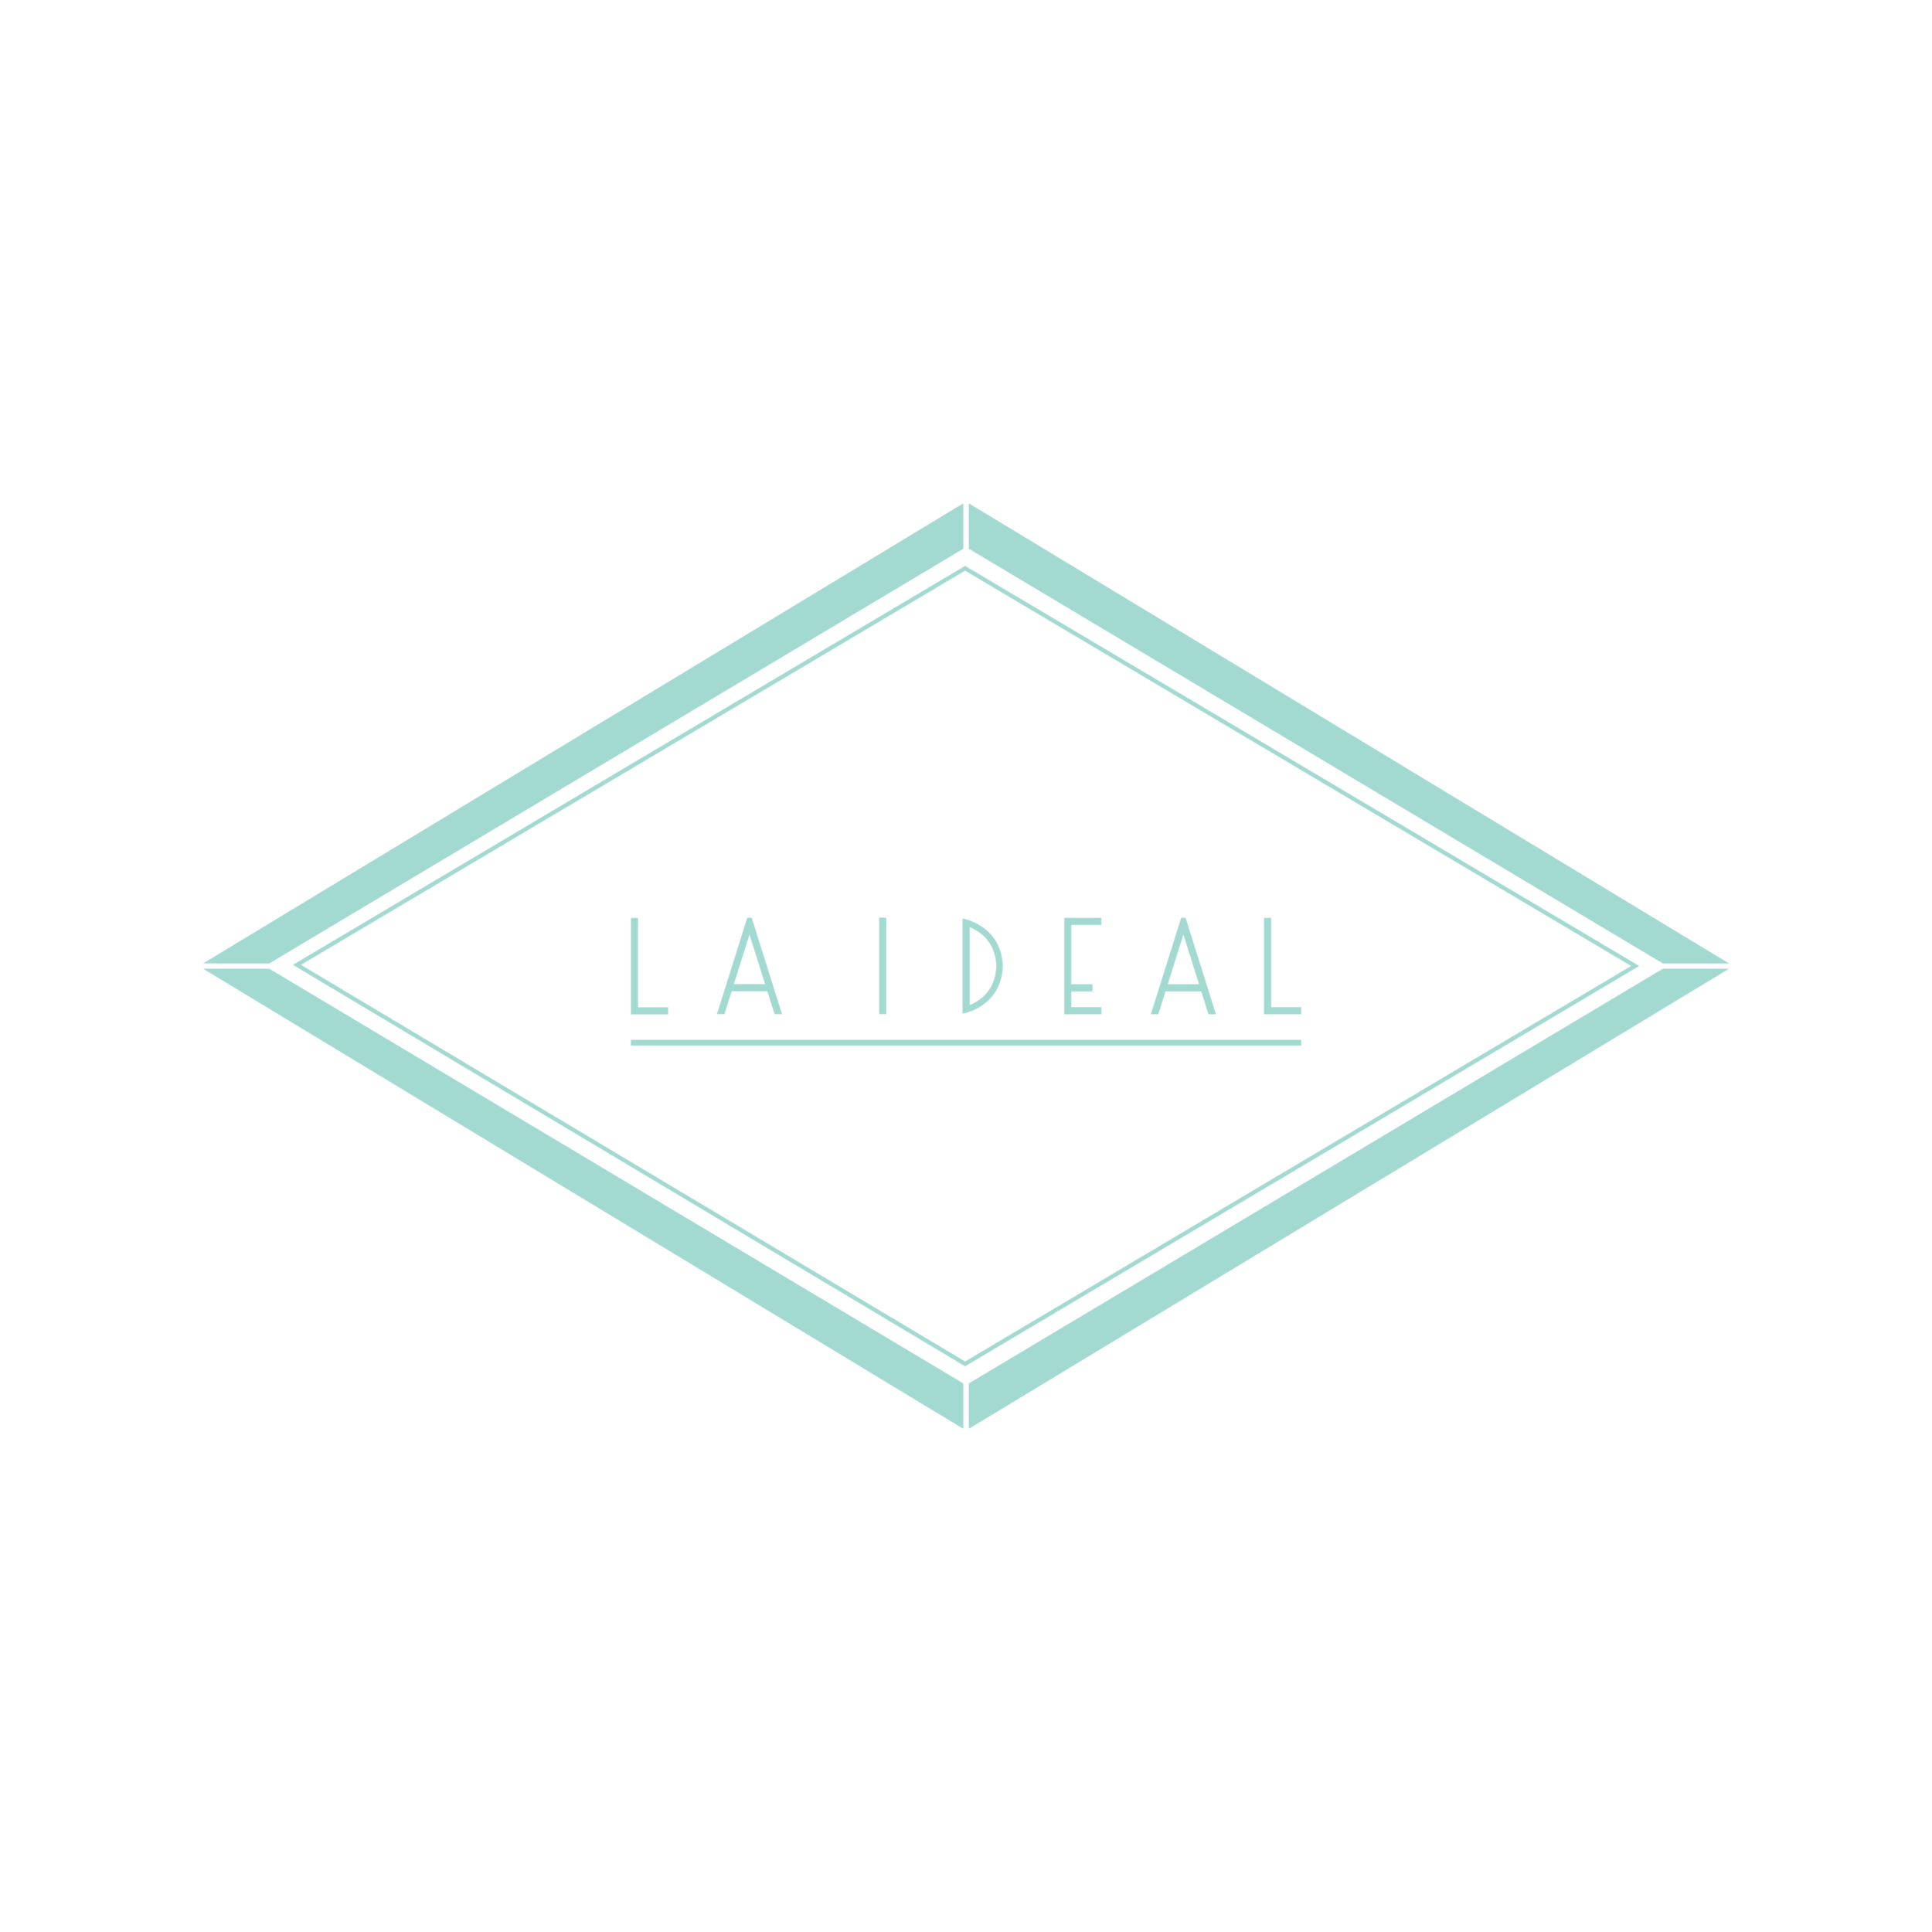 logo-laideal-01-01.png